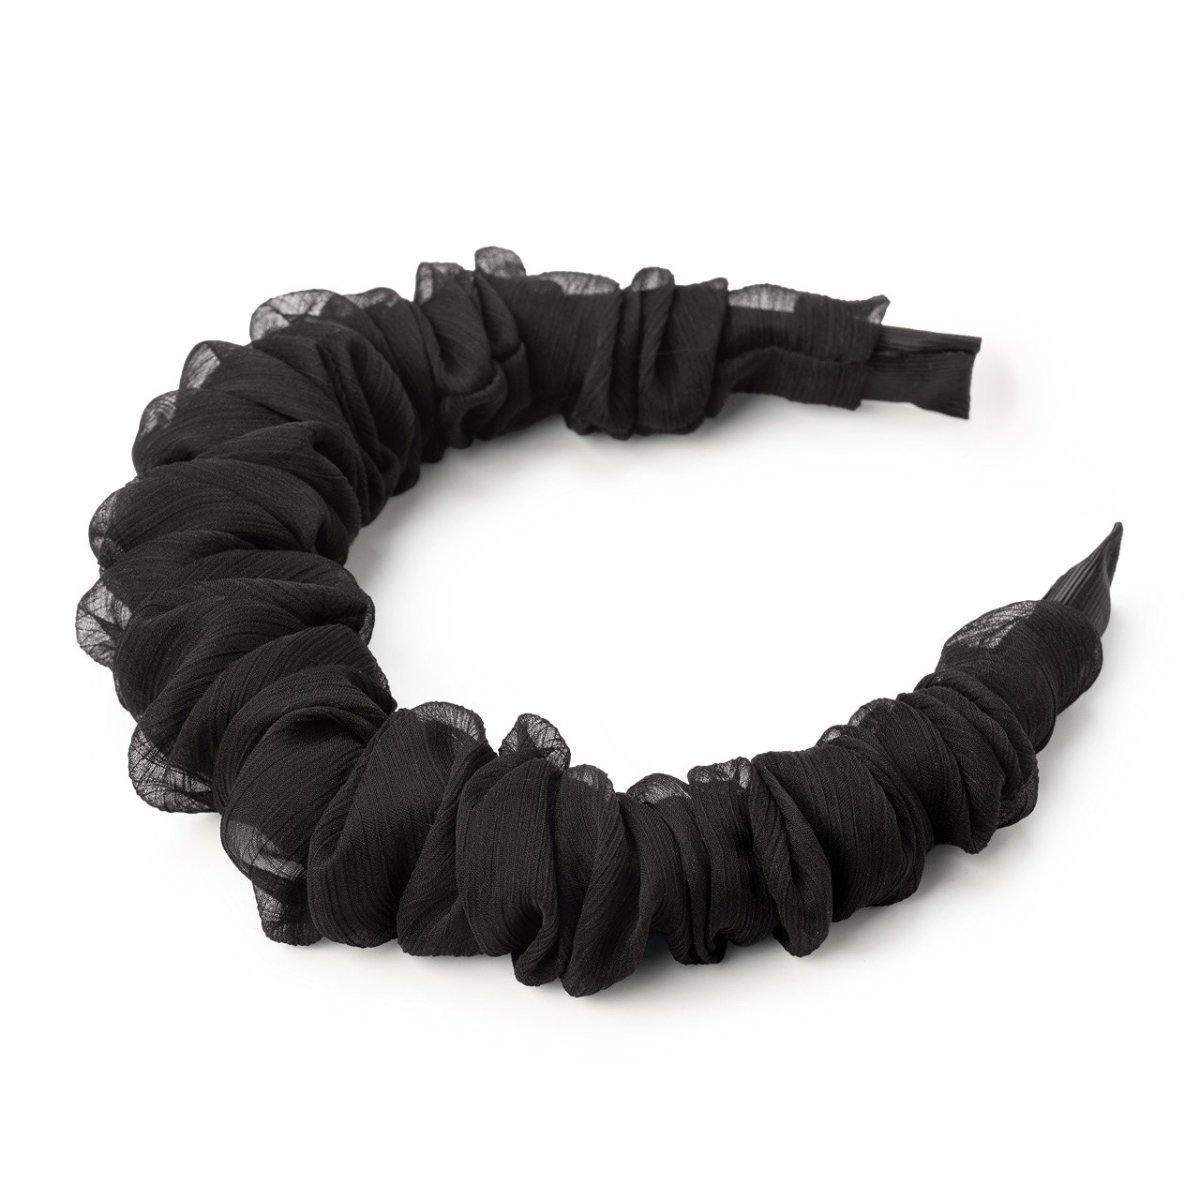 Ruched Chiffon Headband - Black - KITSCH